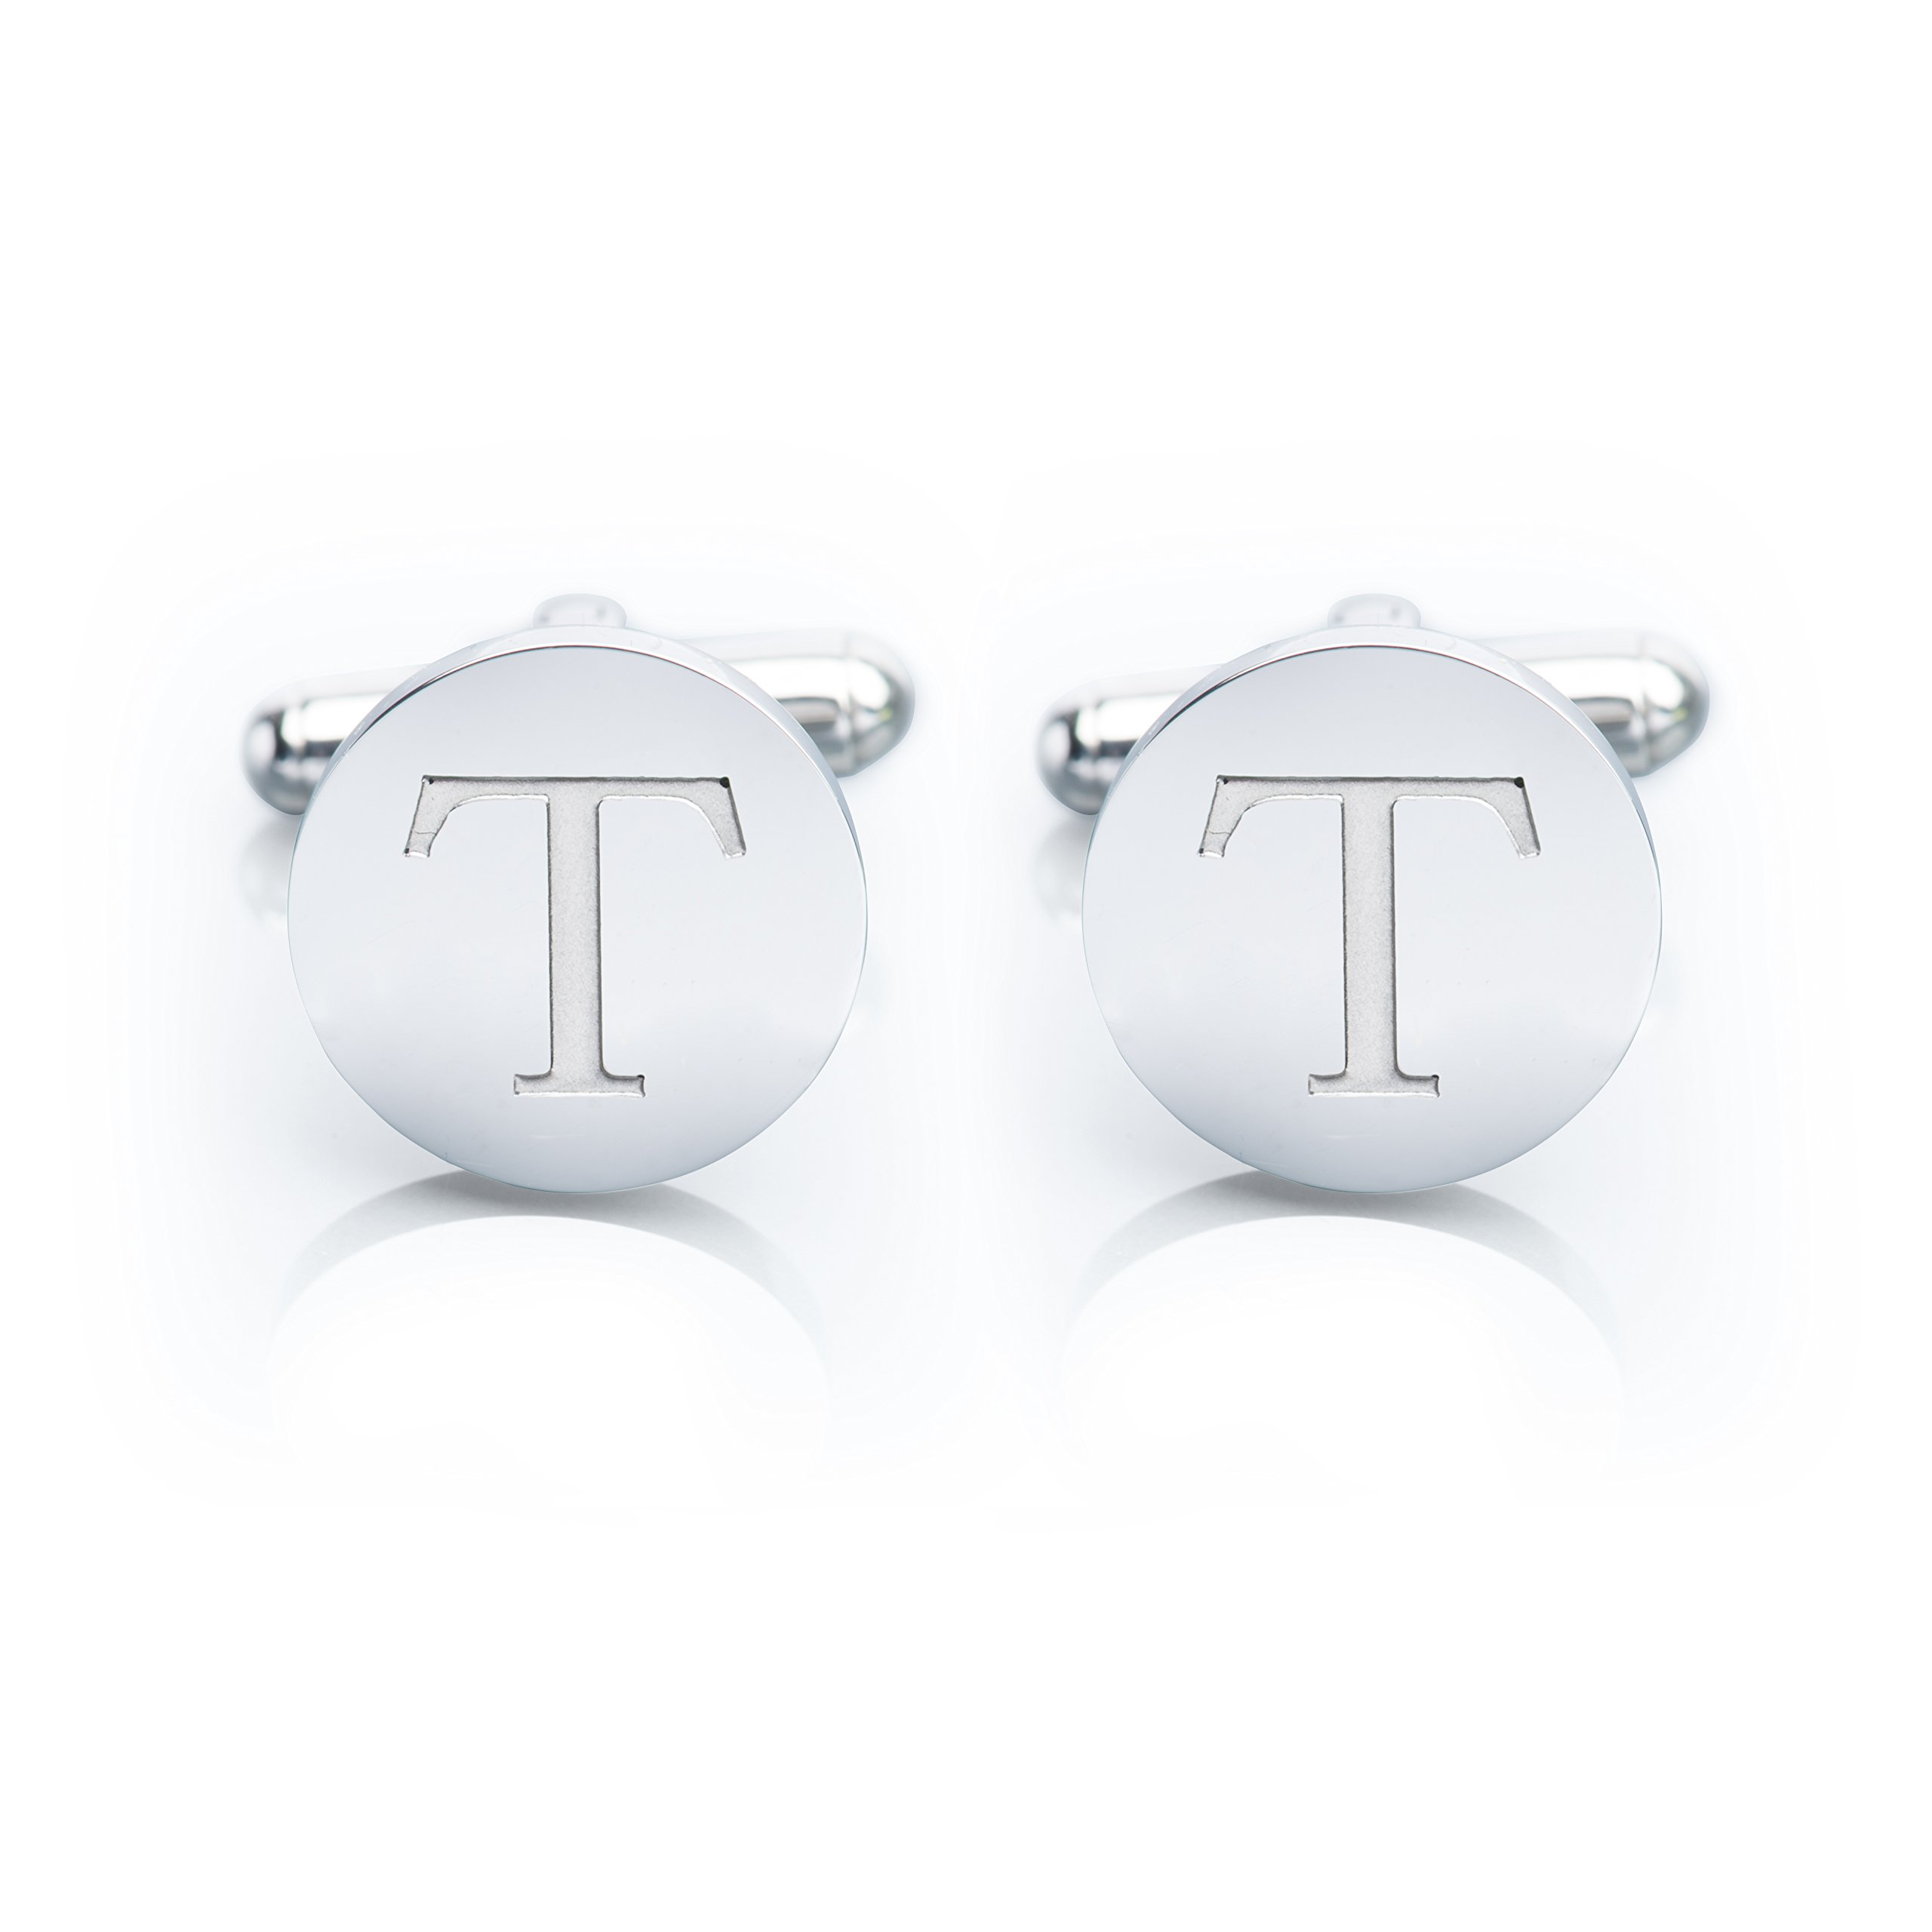 Men's 18K White Gold-Plated Engraved Initial Cufflinks with Gift Box– Premium Quality Personalized Alphabet Letter (T - White Gold) by Iron & Oak (Image #1)